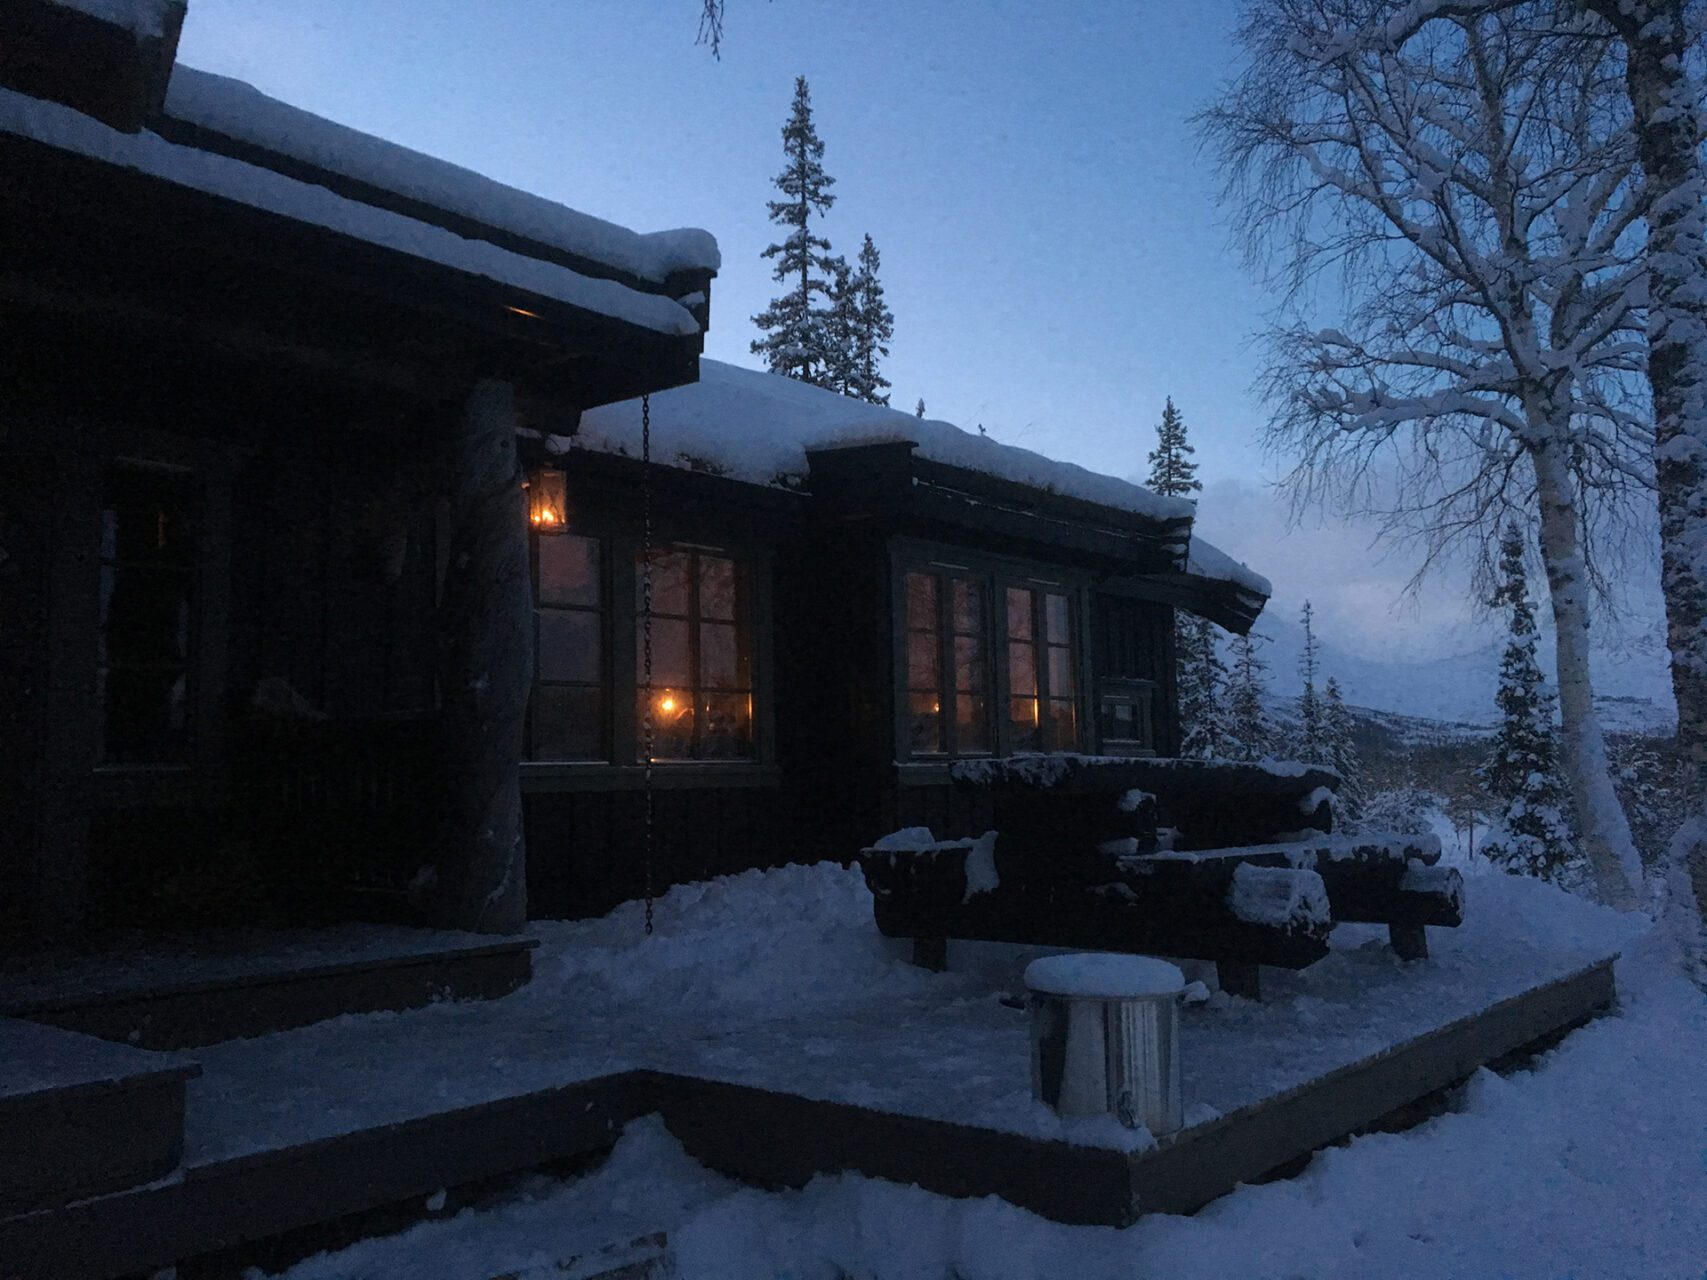 Picture of the outside of a cabin at dusk